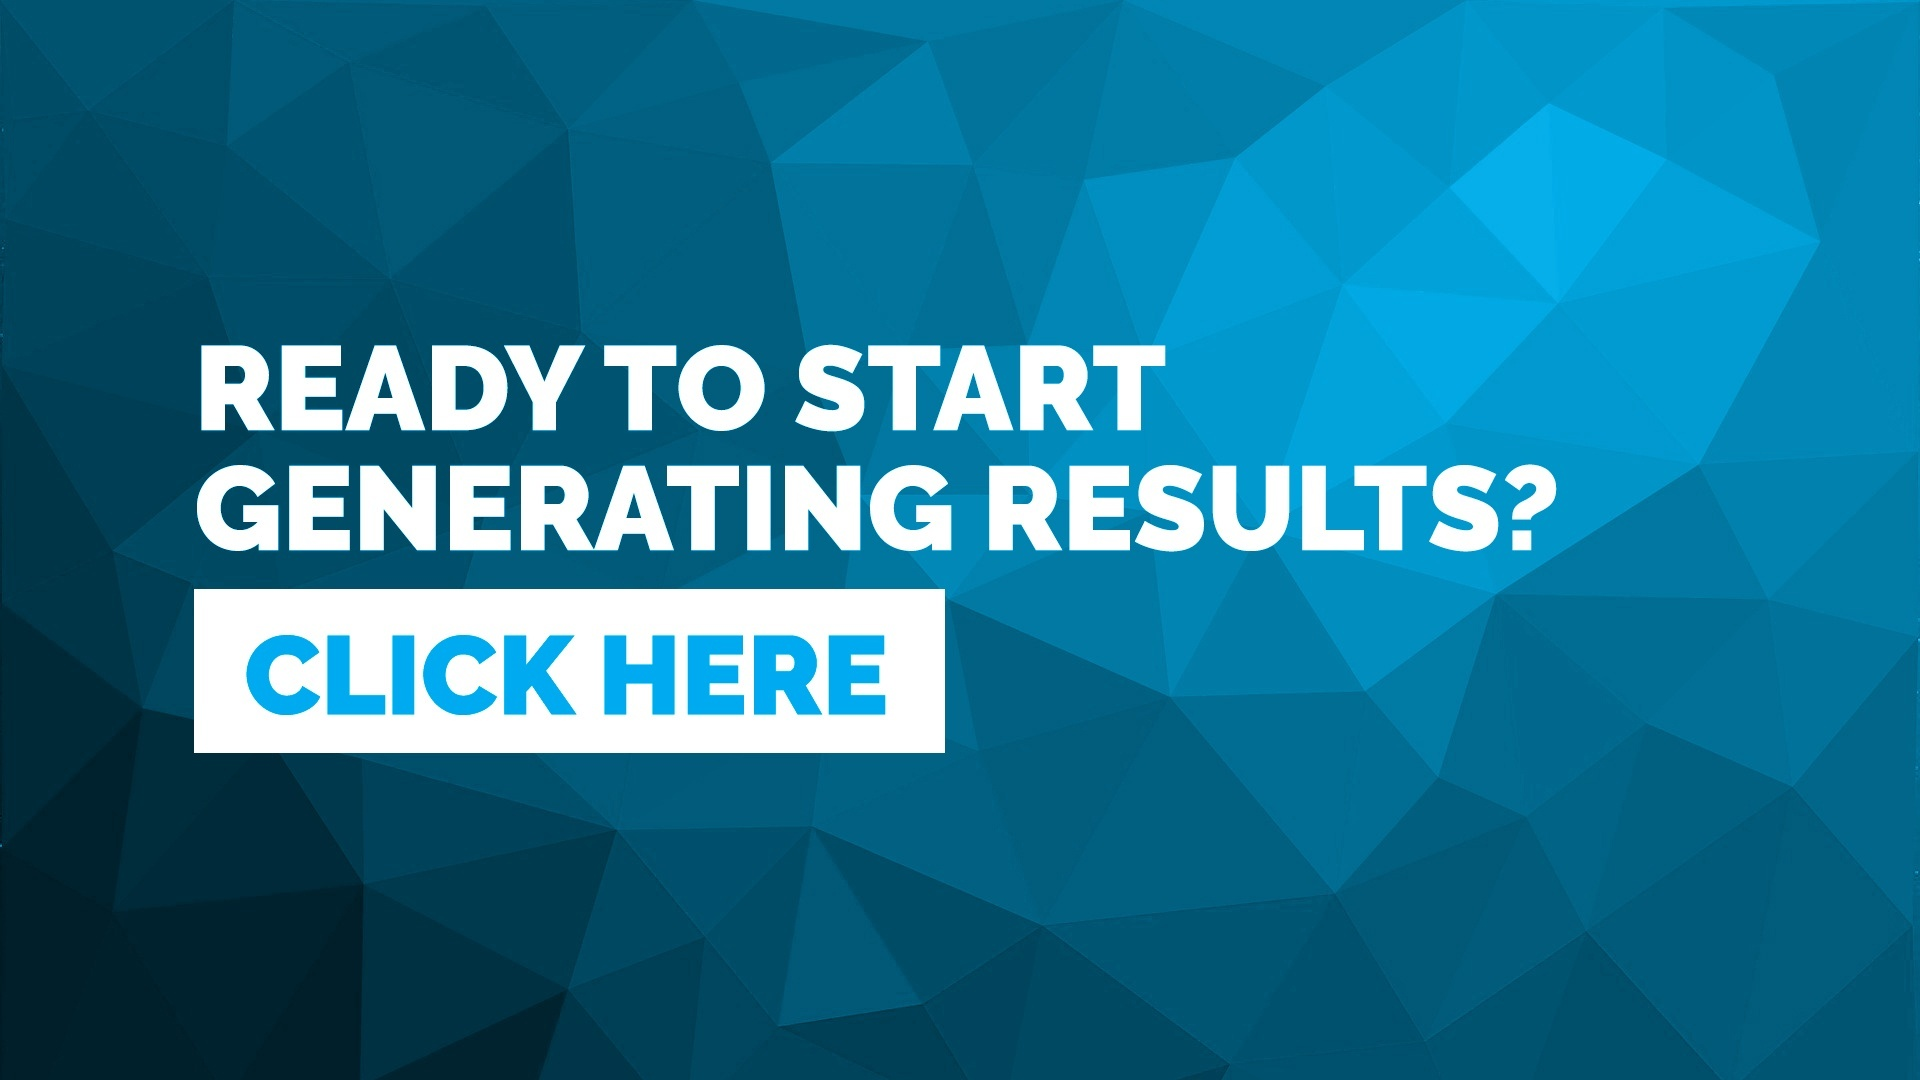 Ready to Start Generating Results? Click Here.